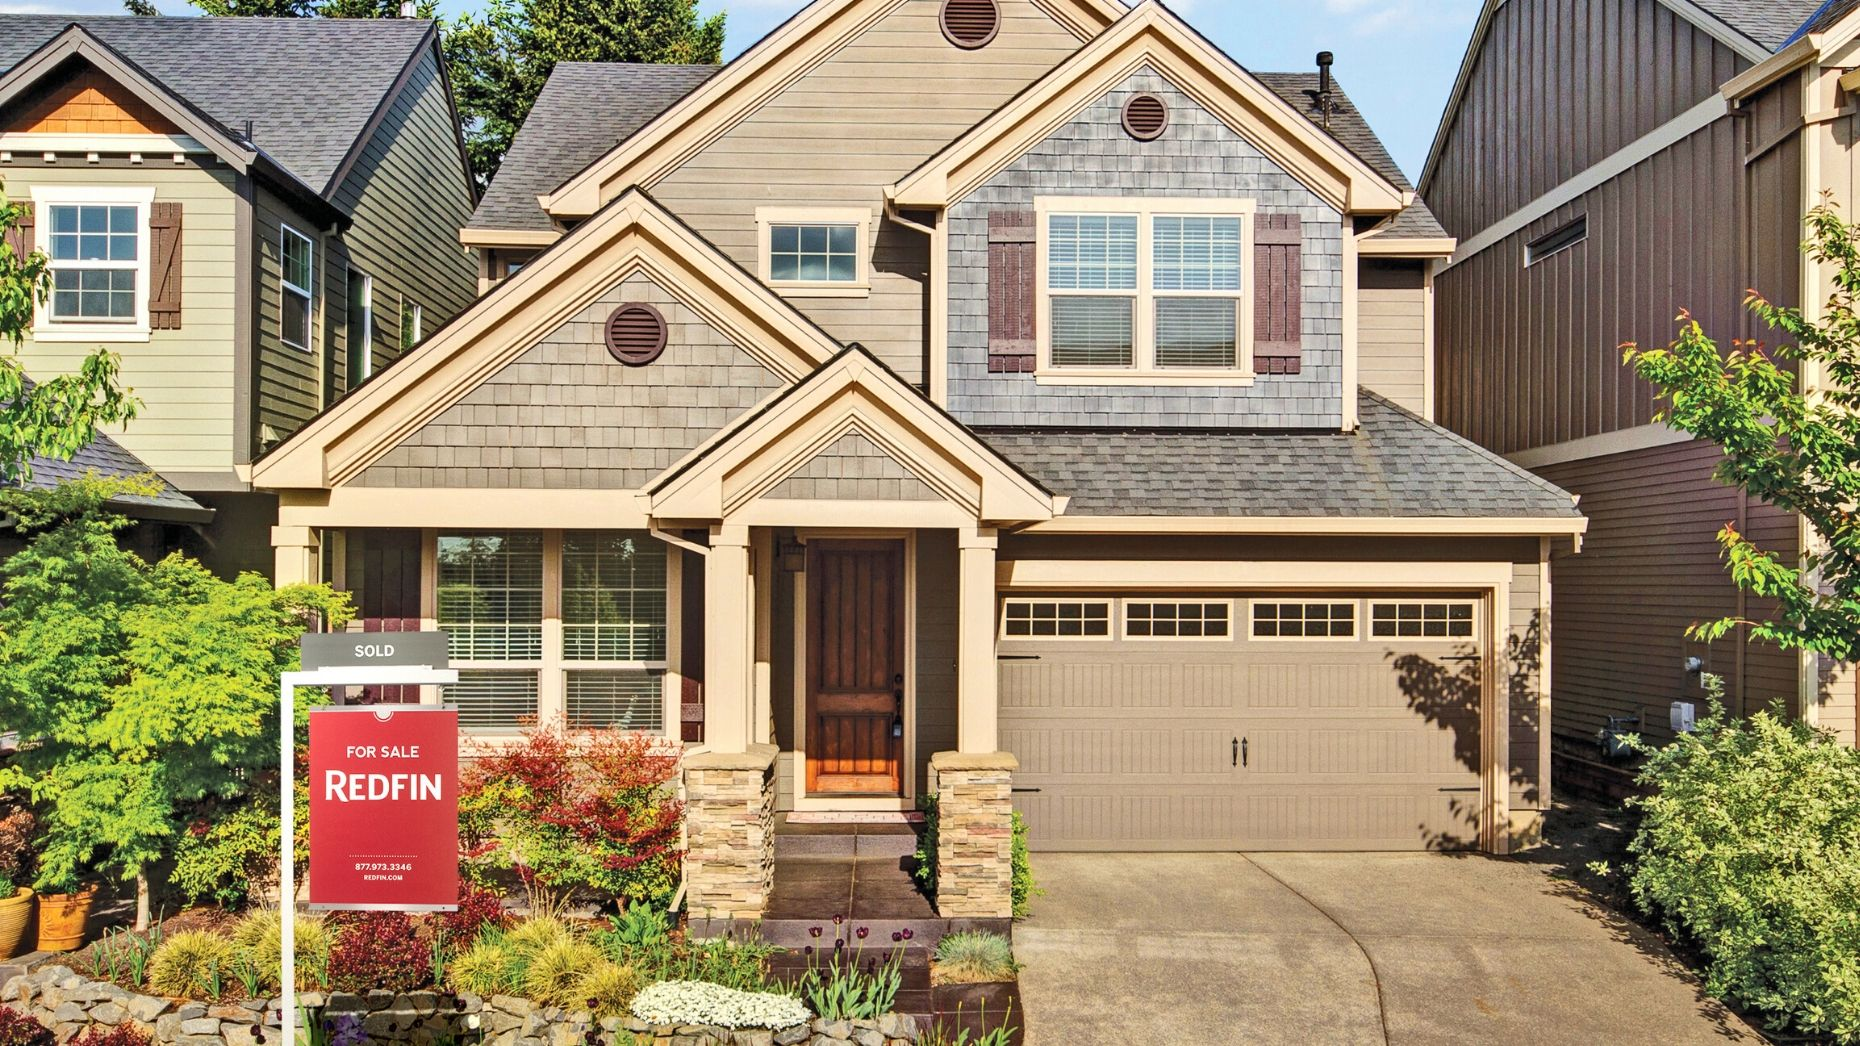 Redfin returns to homebuying in 4 more markets